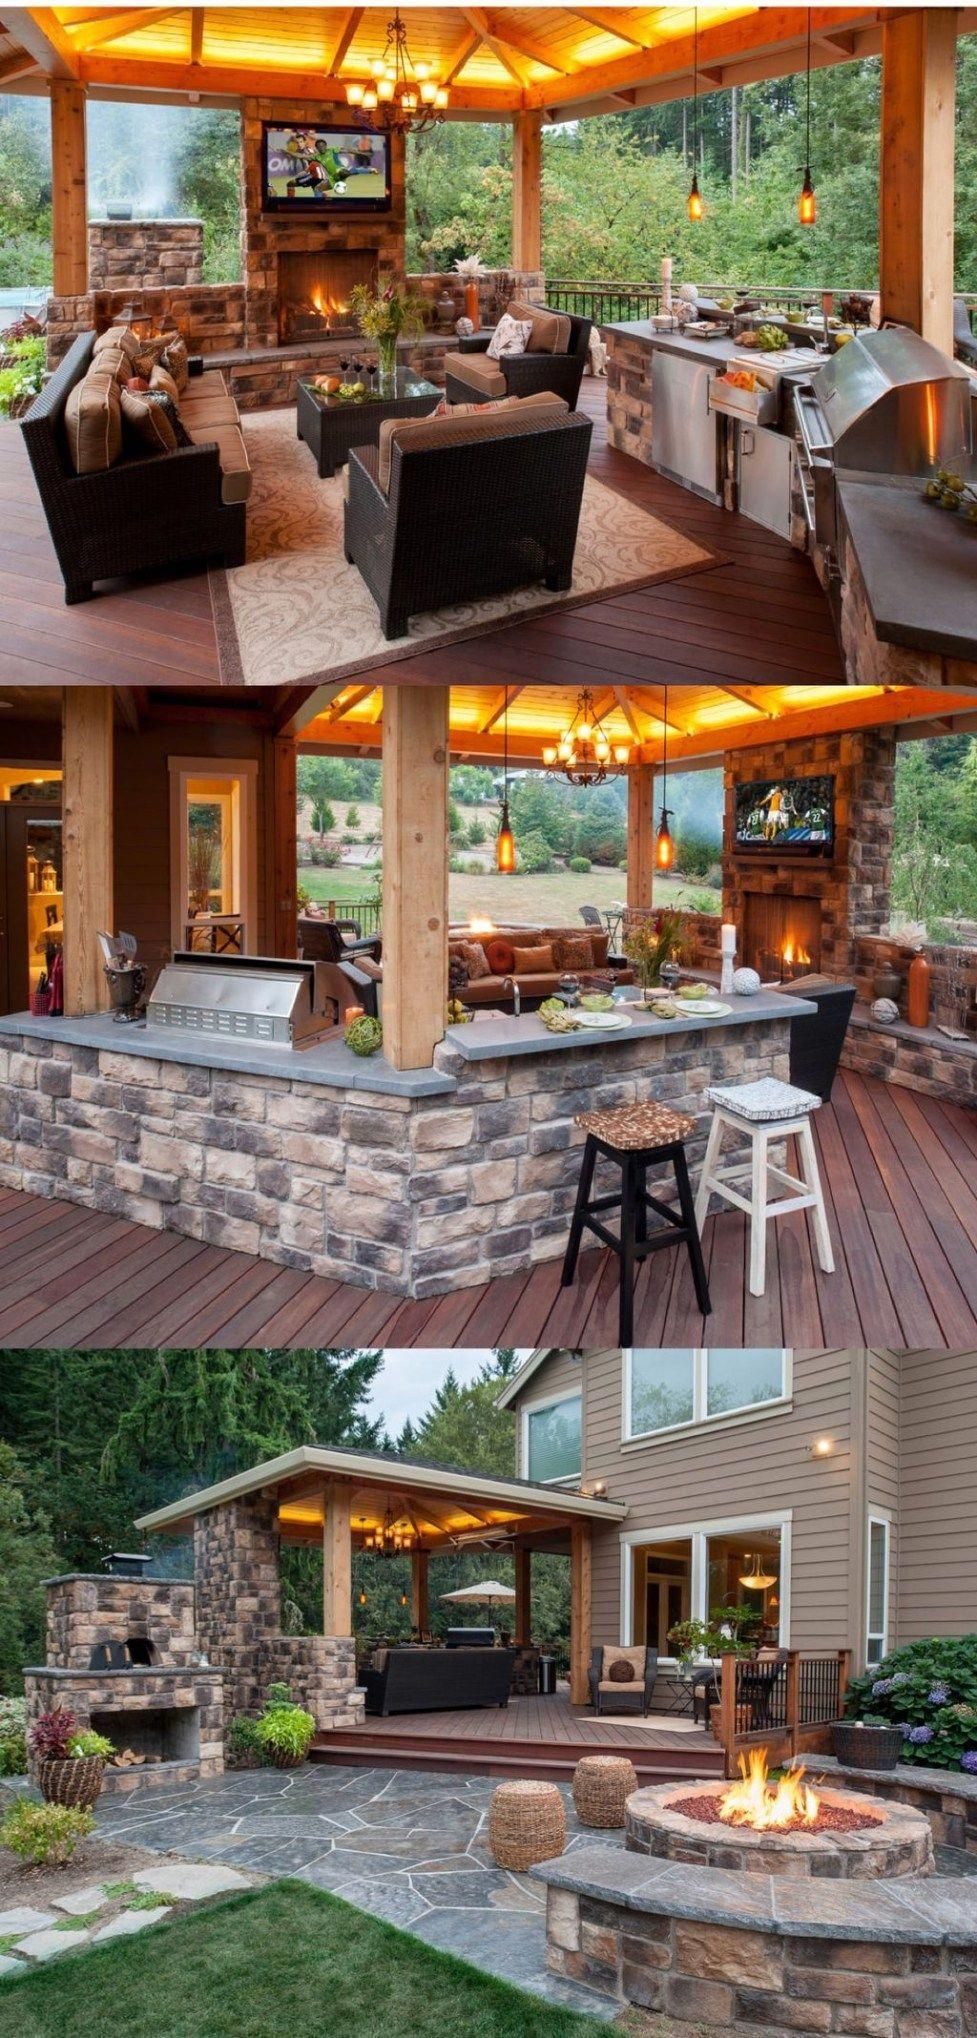 Modern outdoor kitchen design ideas 45 ...